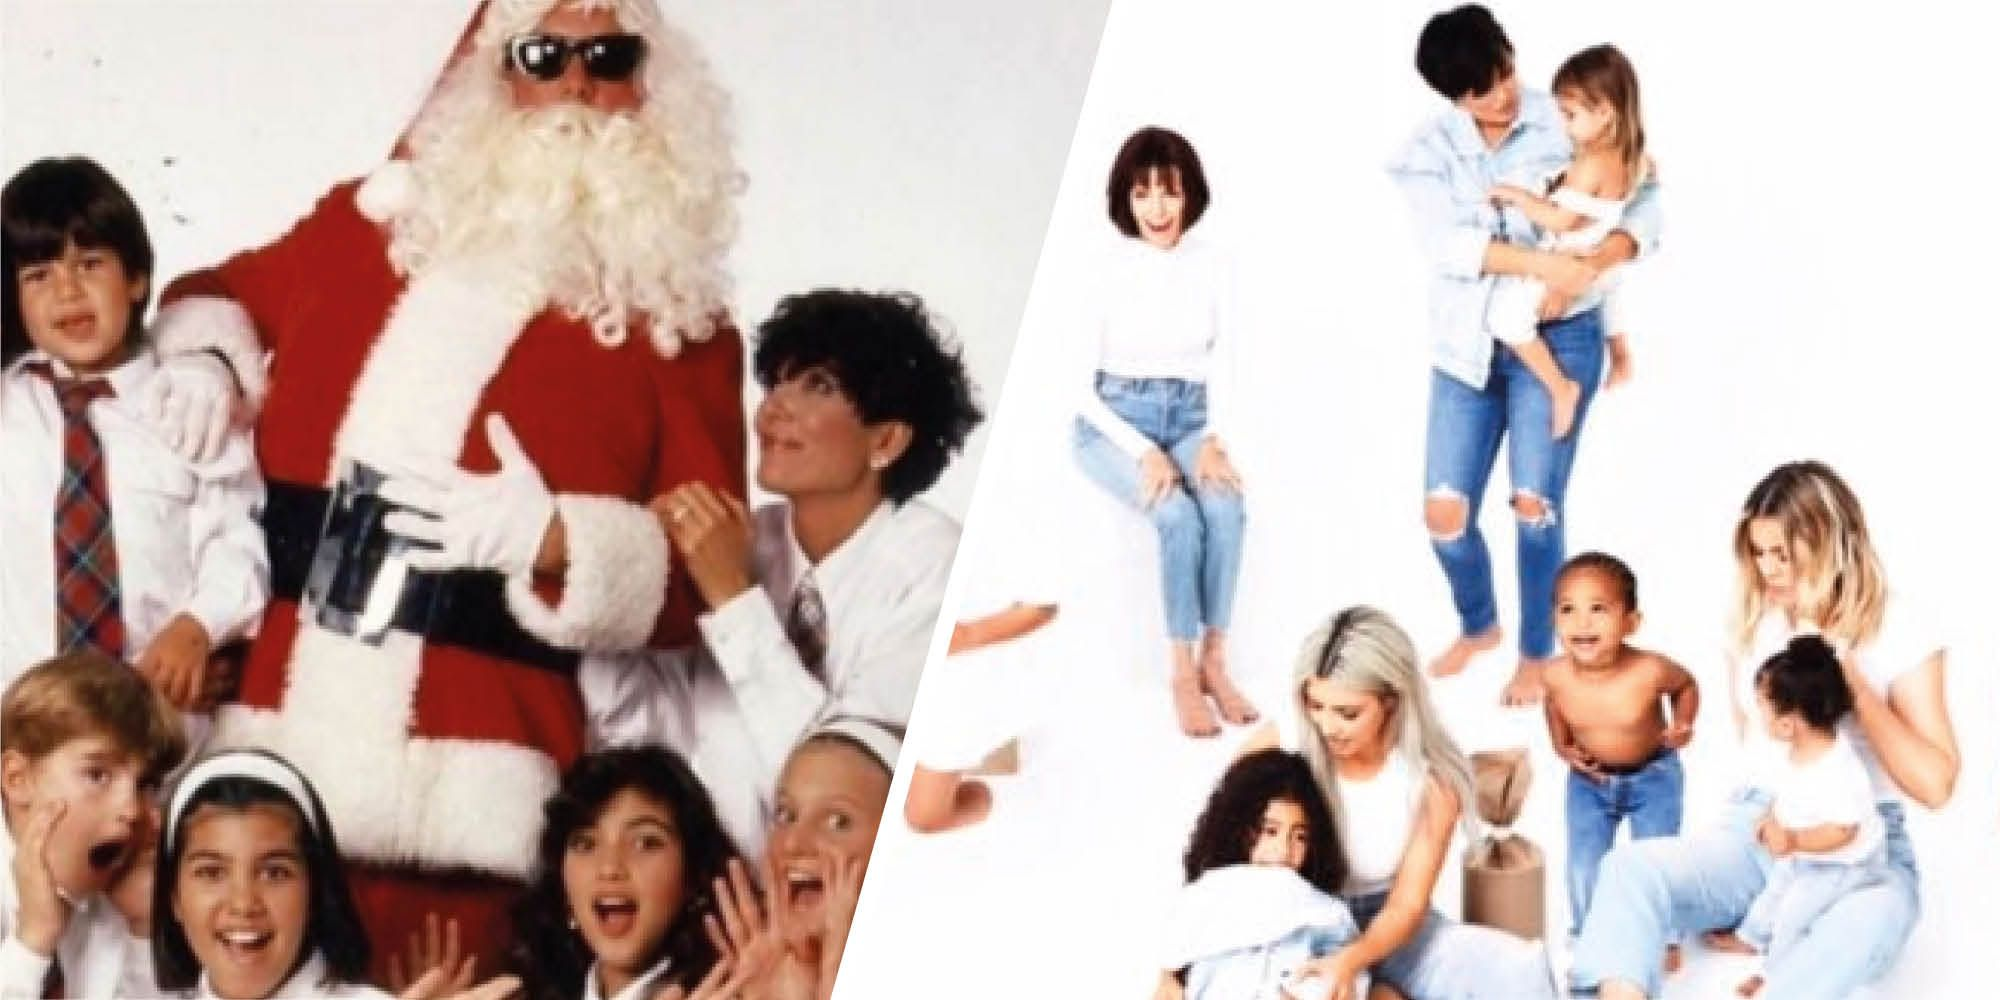 Kardashian Christmas cards from years gone by